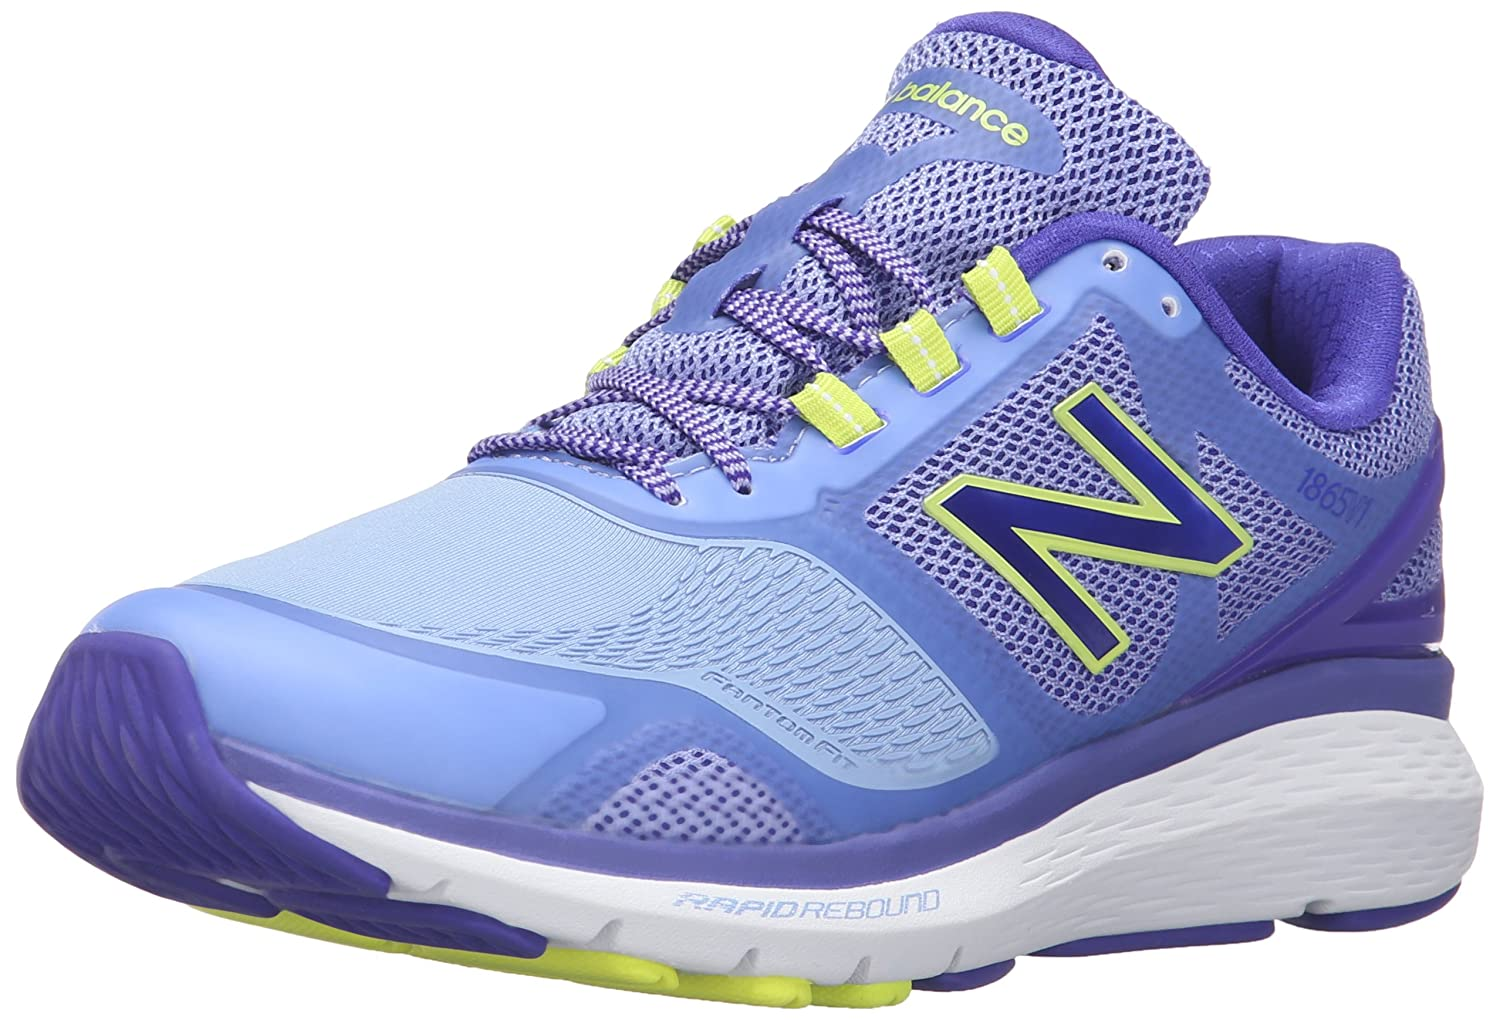 New Balance Women's WW1865v1 Walking Shoe B019DLDM5Q 5 B(M) US|Purple